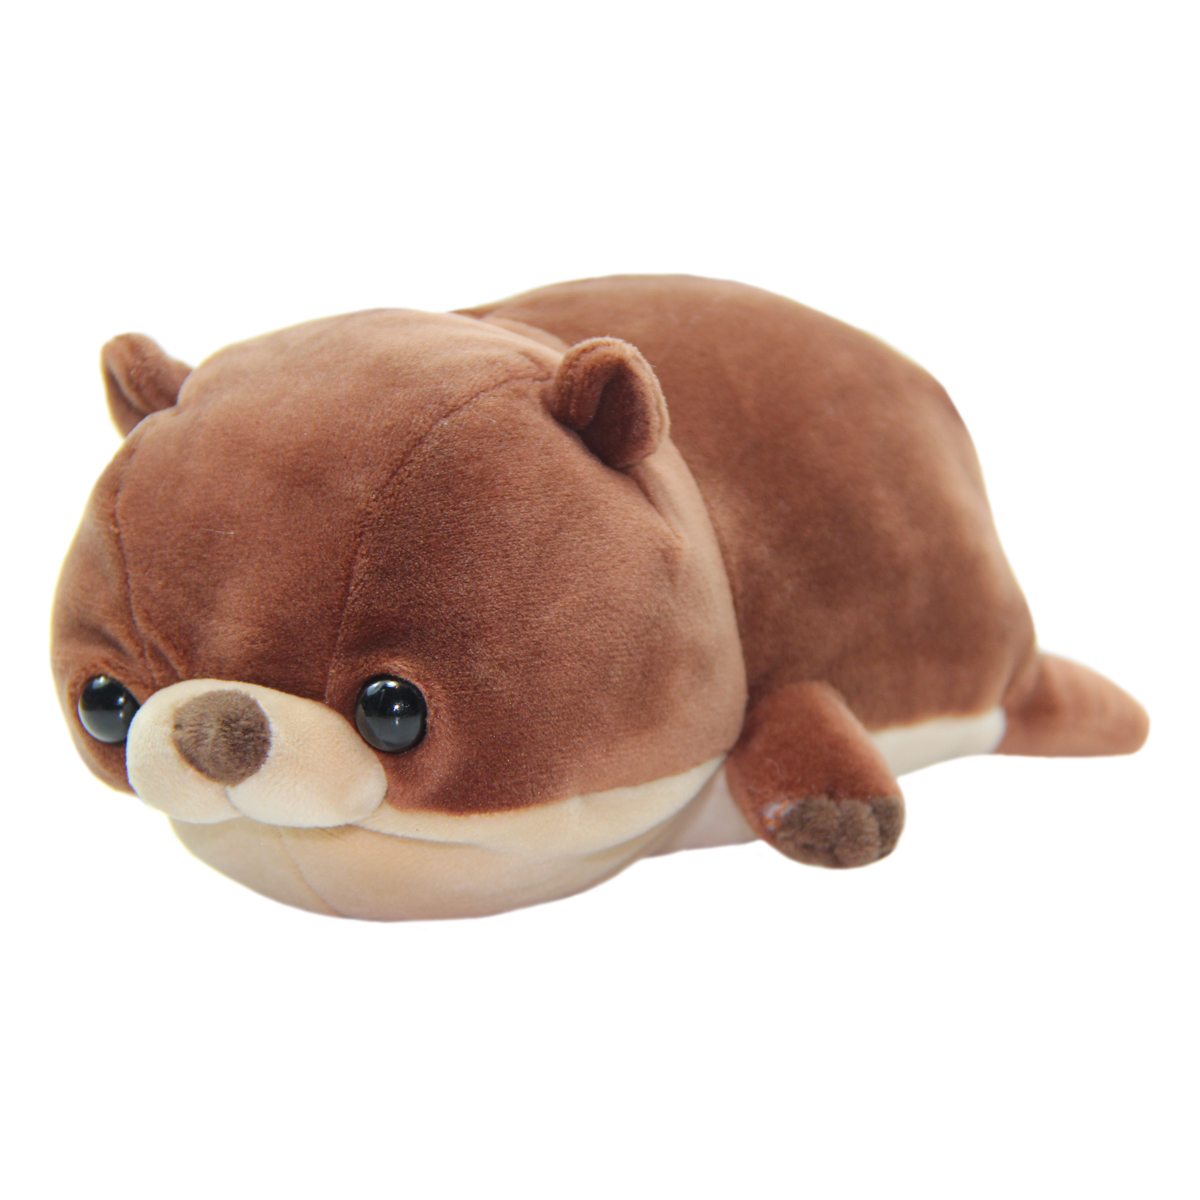 Mochi Puni Kawauso Collection Super Soft Otter Plush Toy Brown 8 Inches